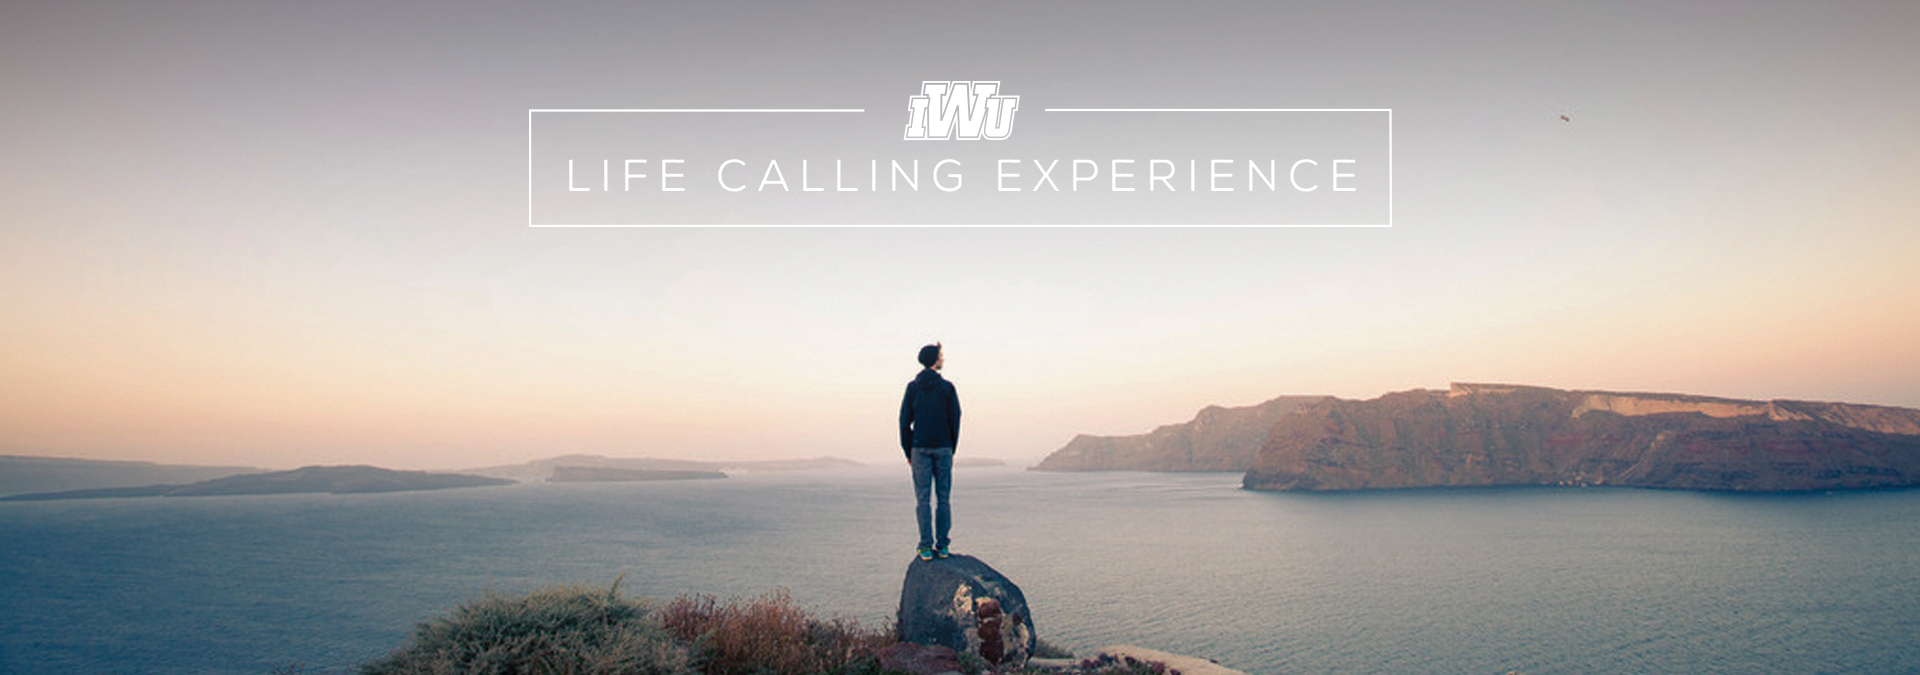 Life Calling Experience